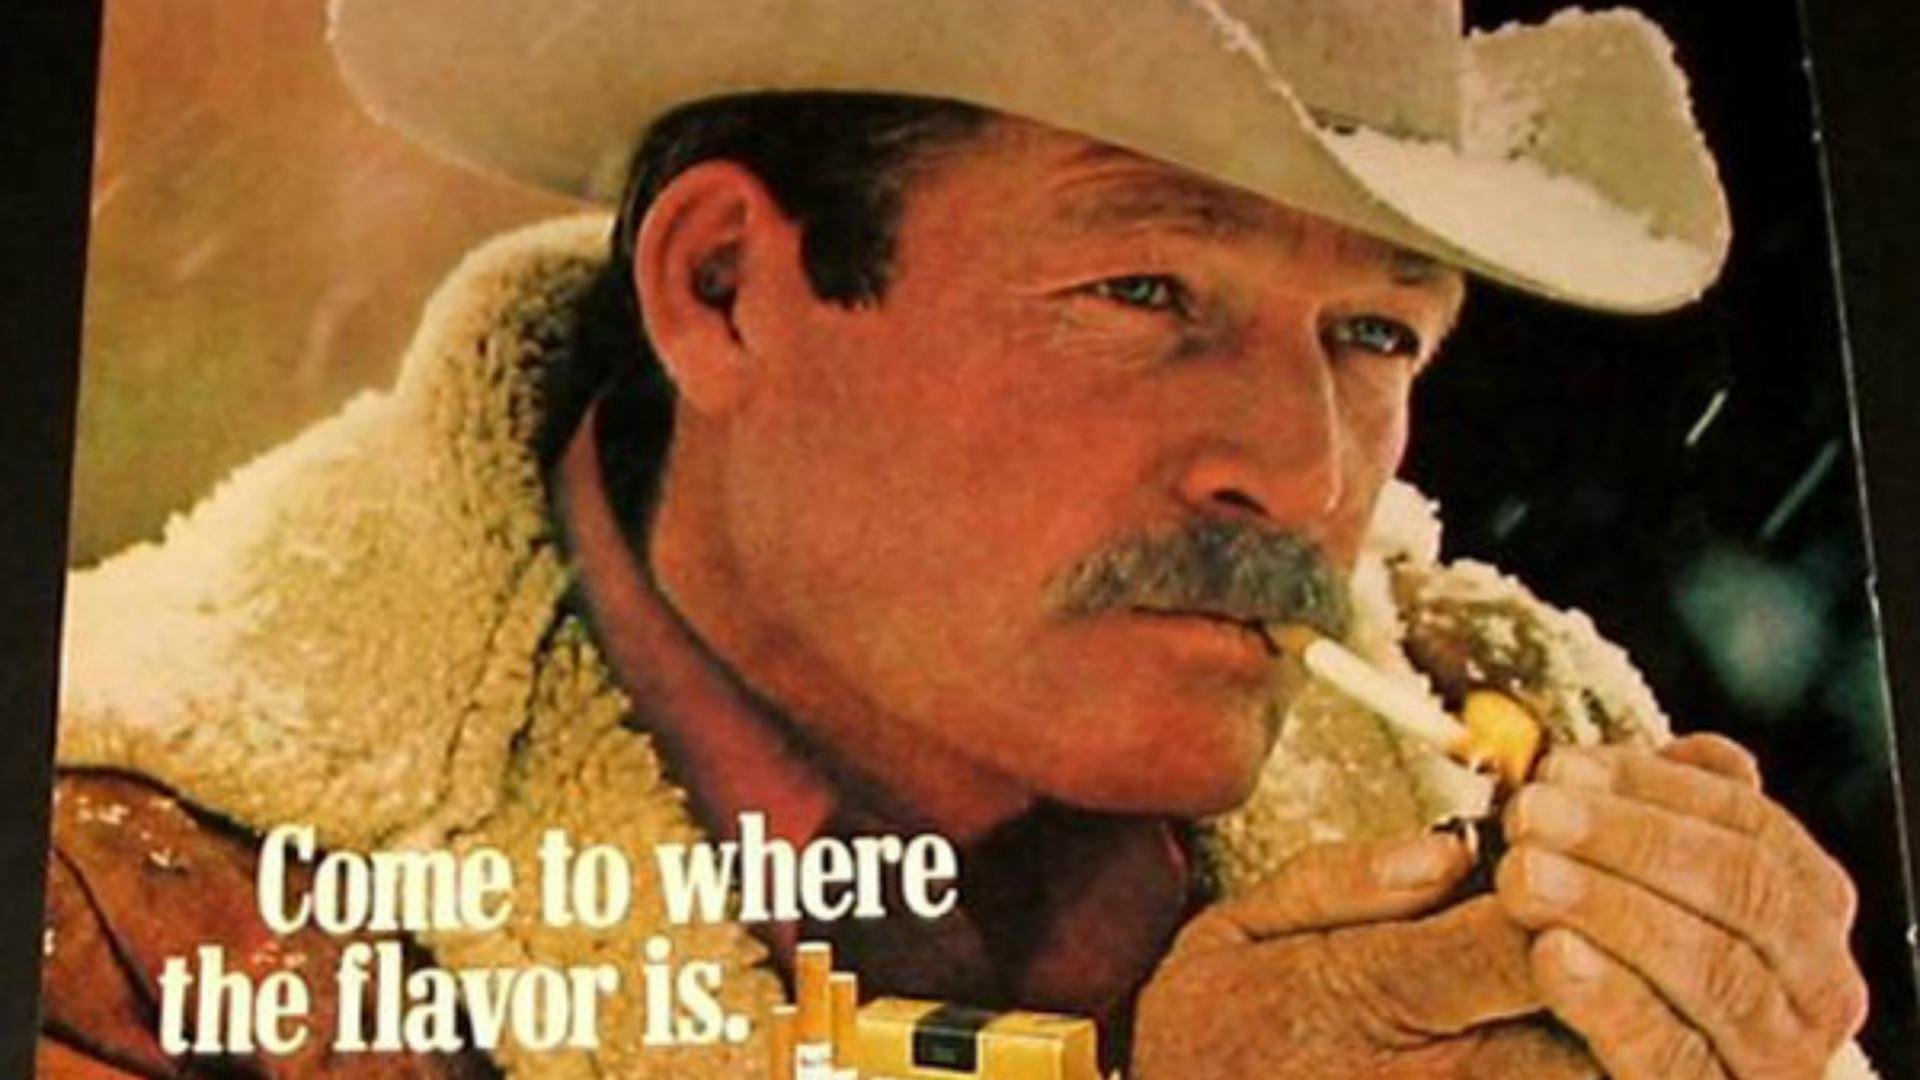 marlboro-man-darrell-winfields-legacy-not-about-smoking-photos.jpg